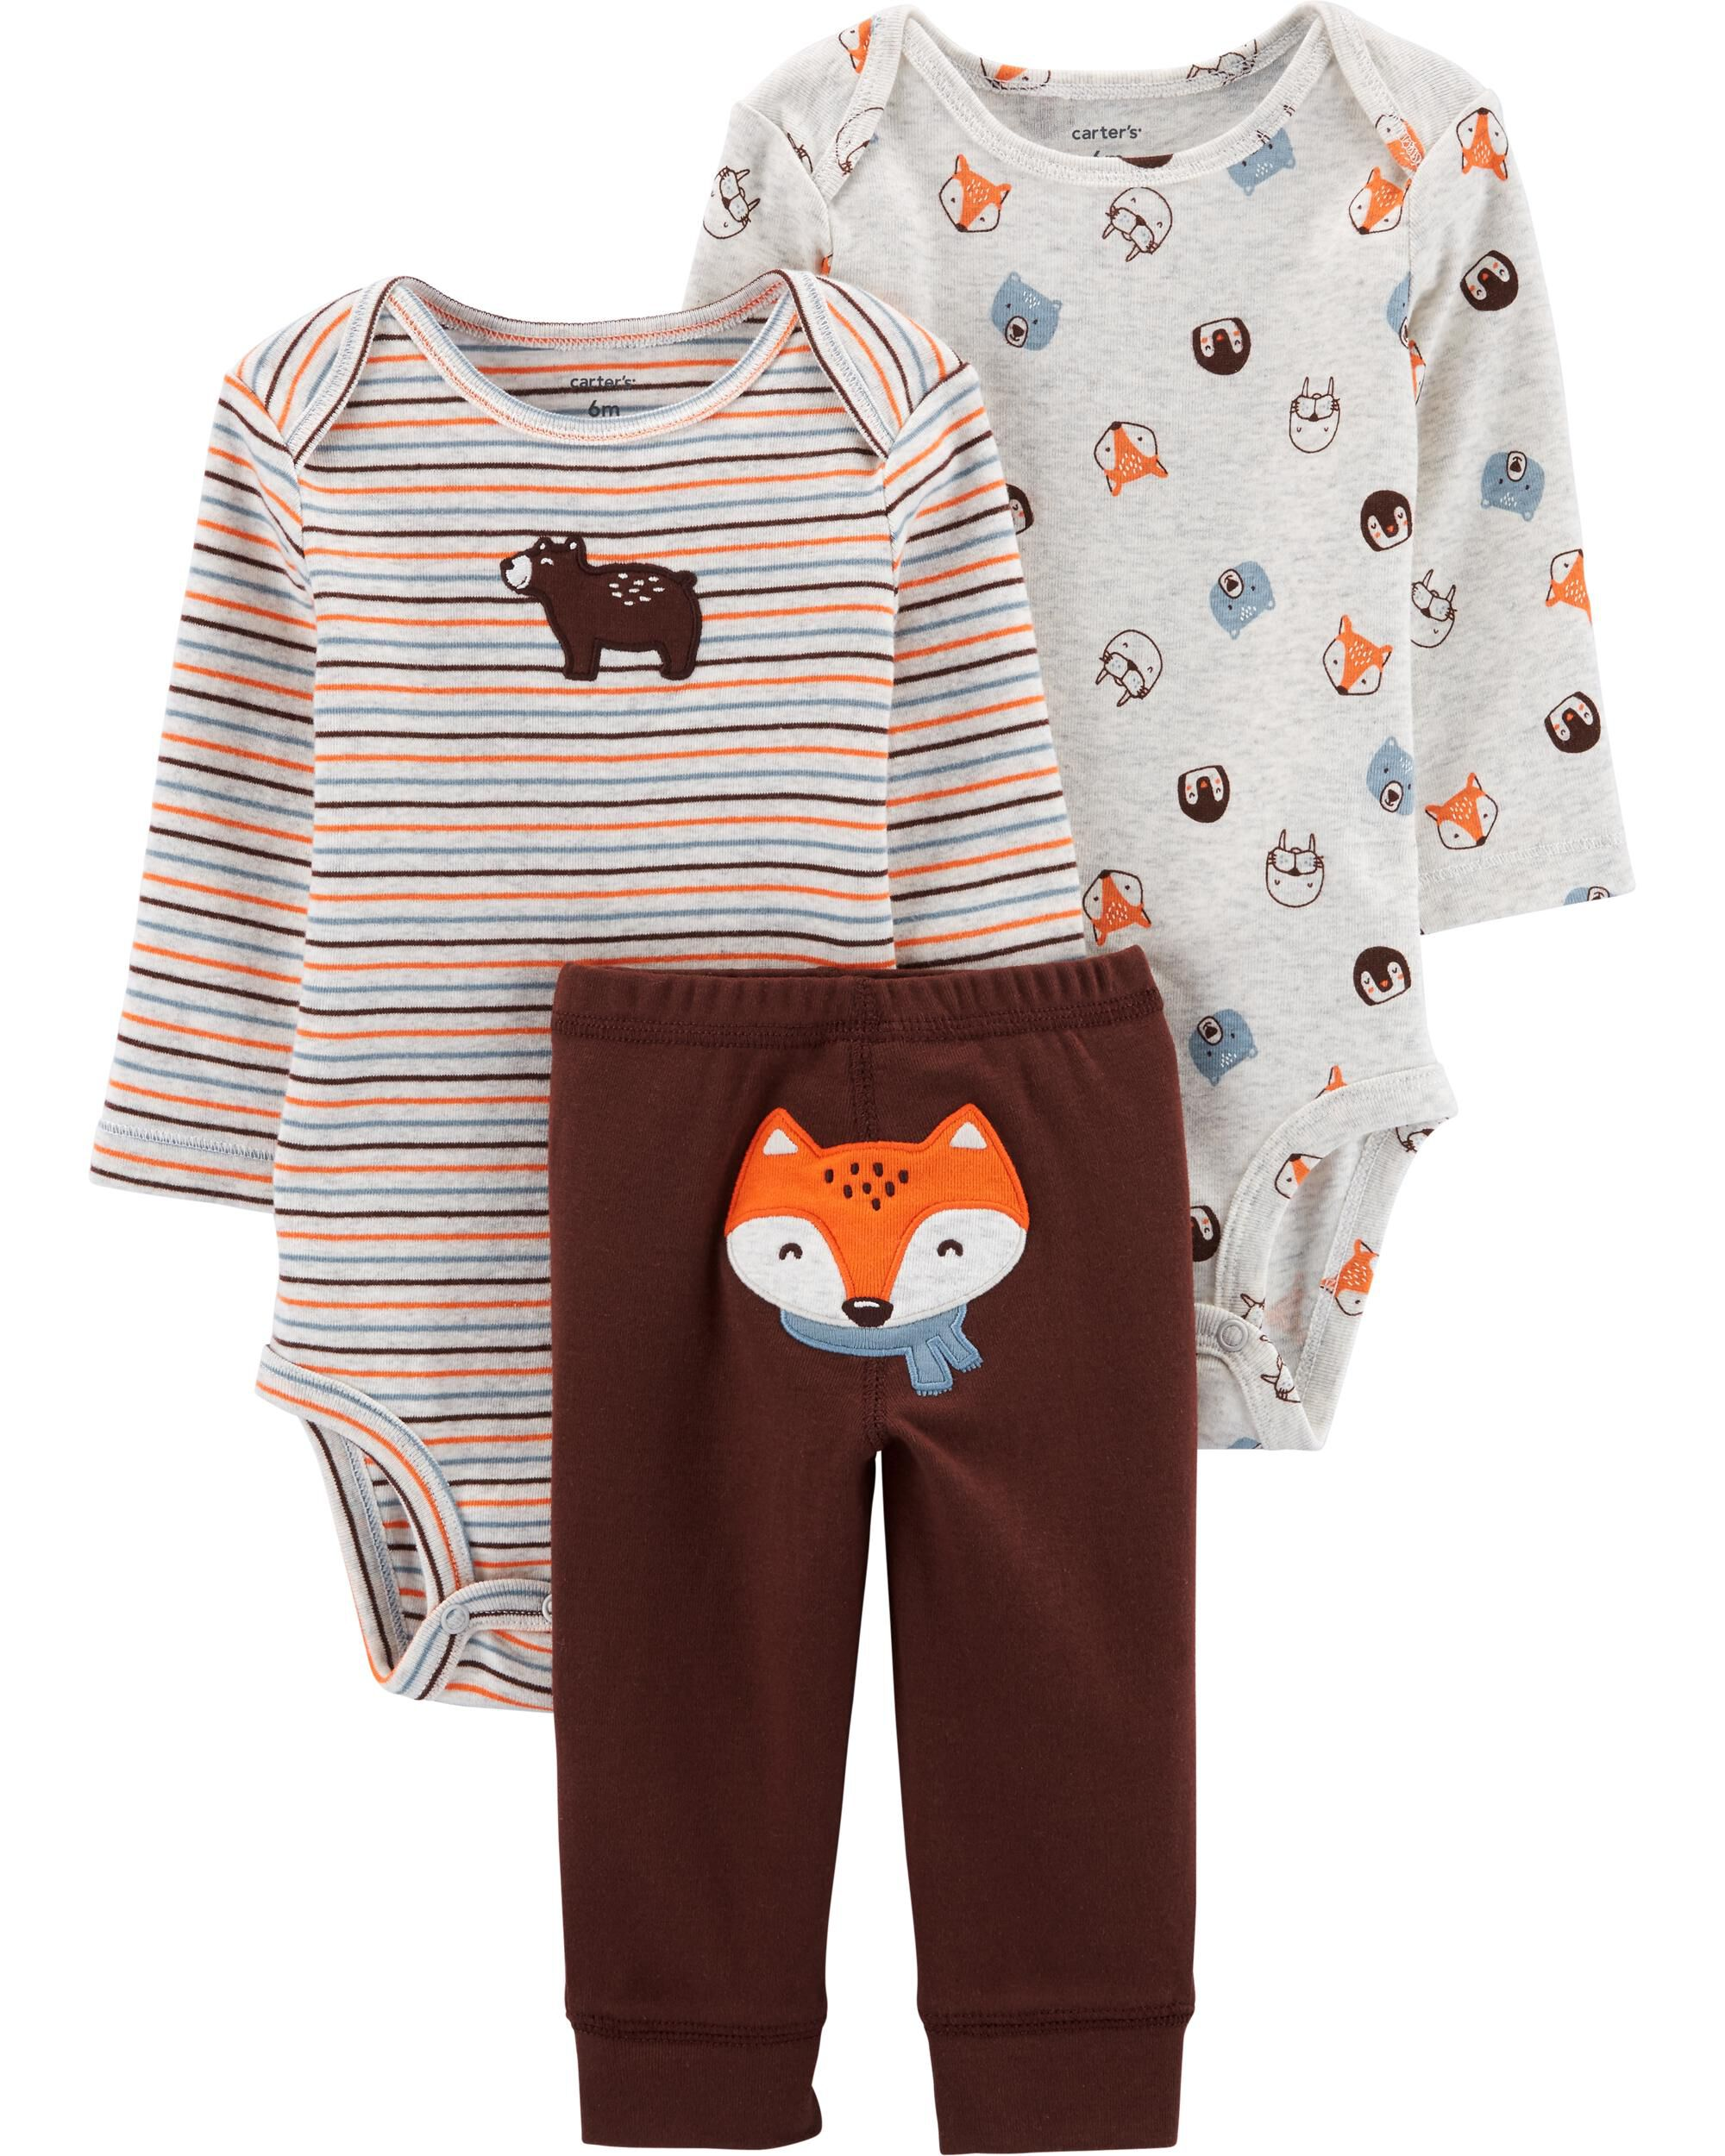 Carters 3 Pc Cotton Baby Toddler Set Leggings Happy Little /& Loved Body Suit